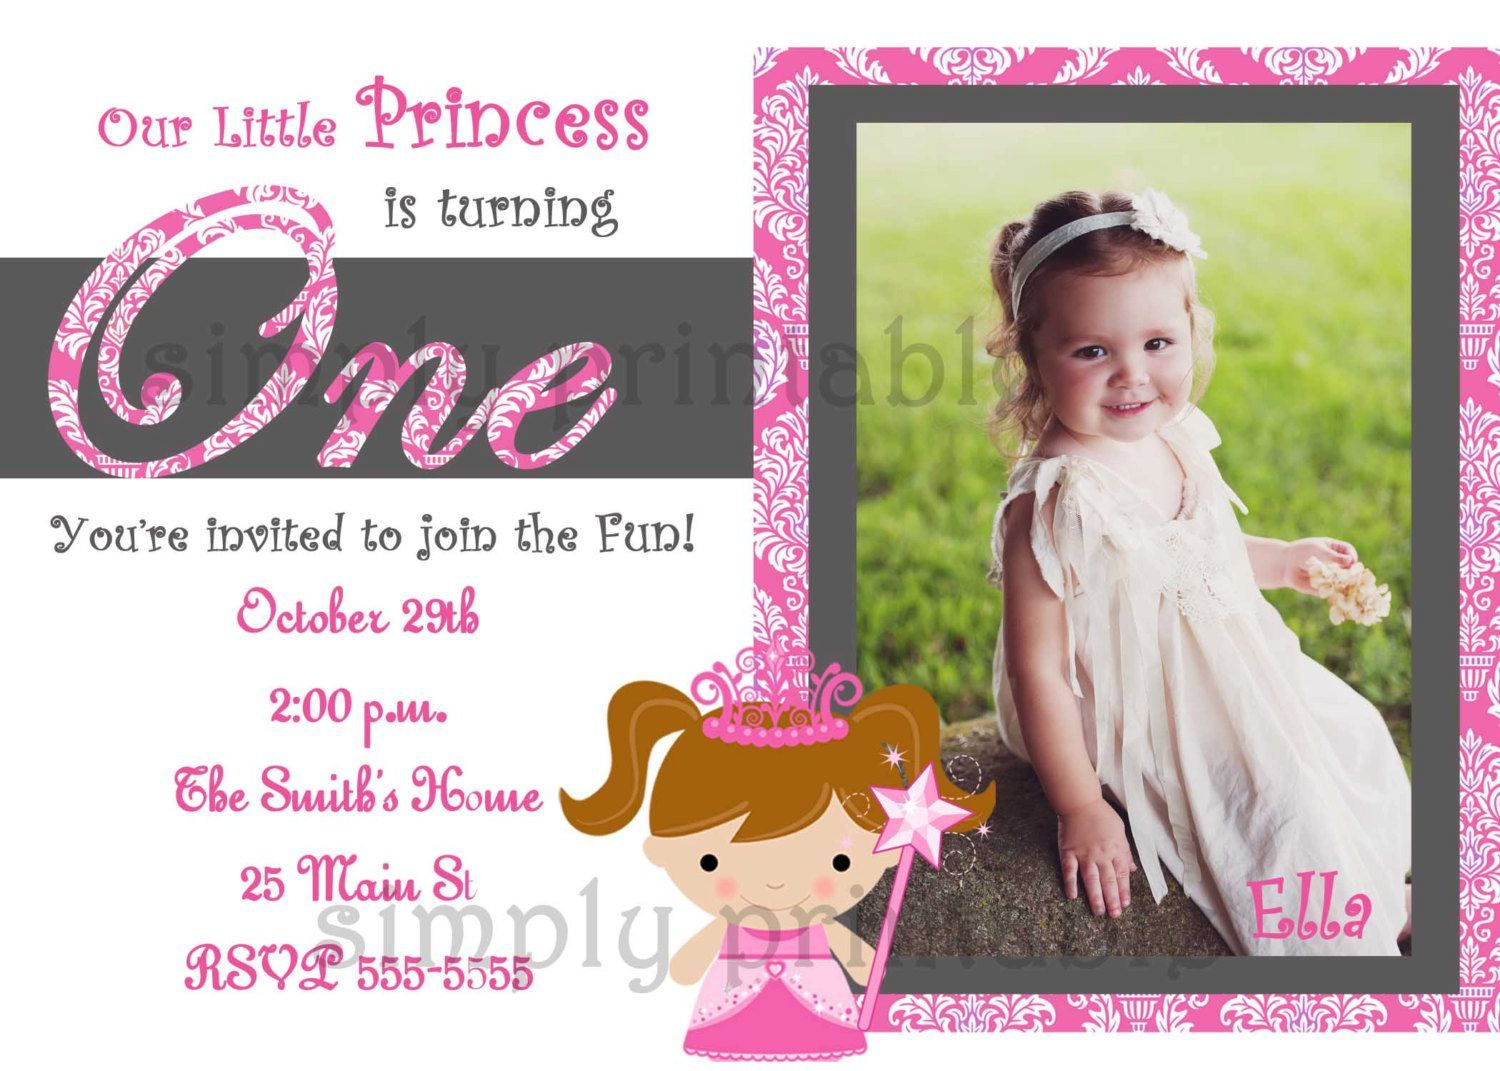 first-birthday-invitations-walgreens | birthday invitations, Birthday invitations